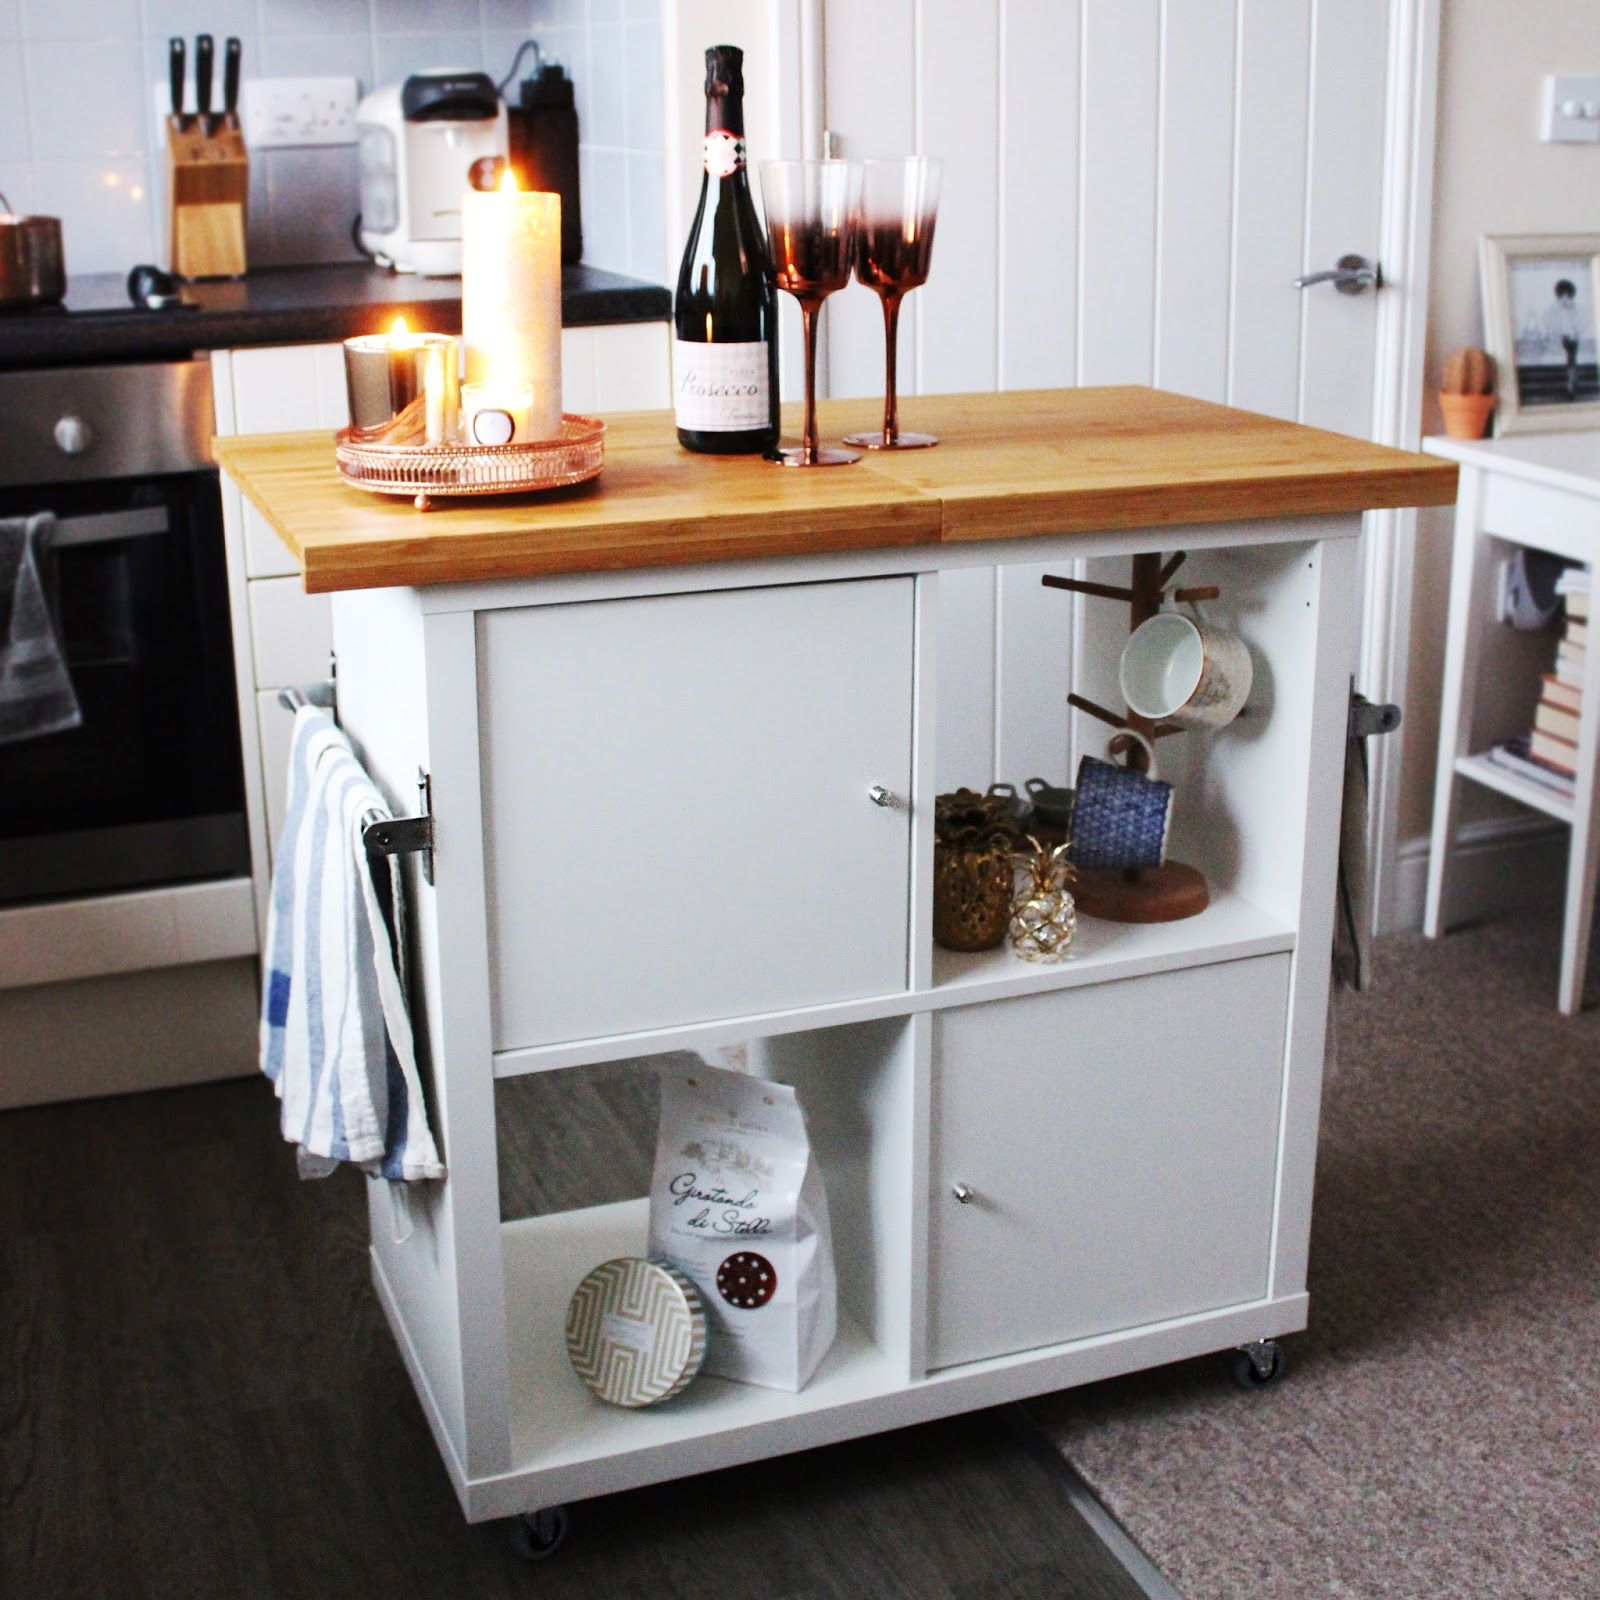 Make It Kitchen Islands Created with IKEA Products